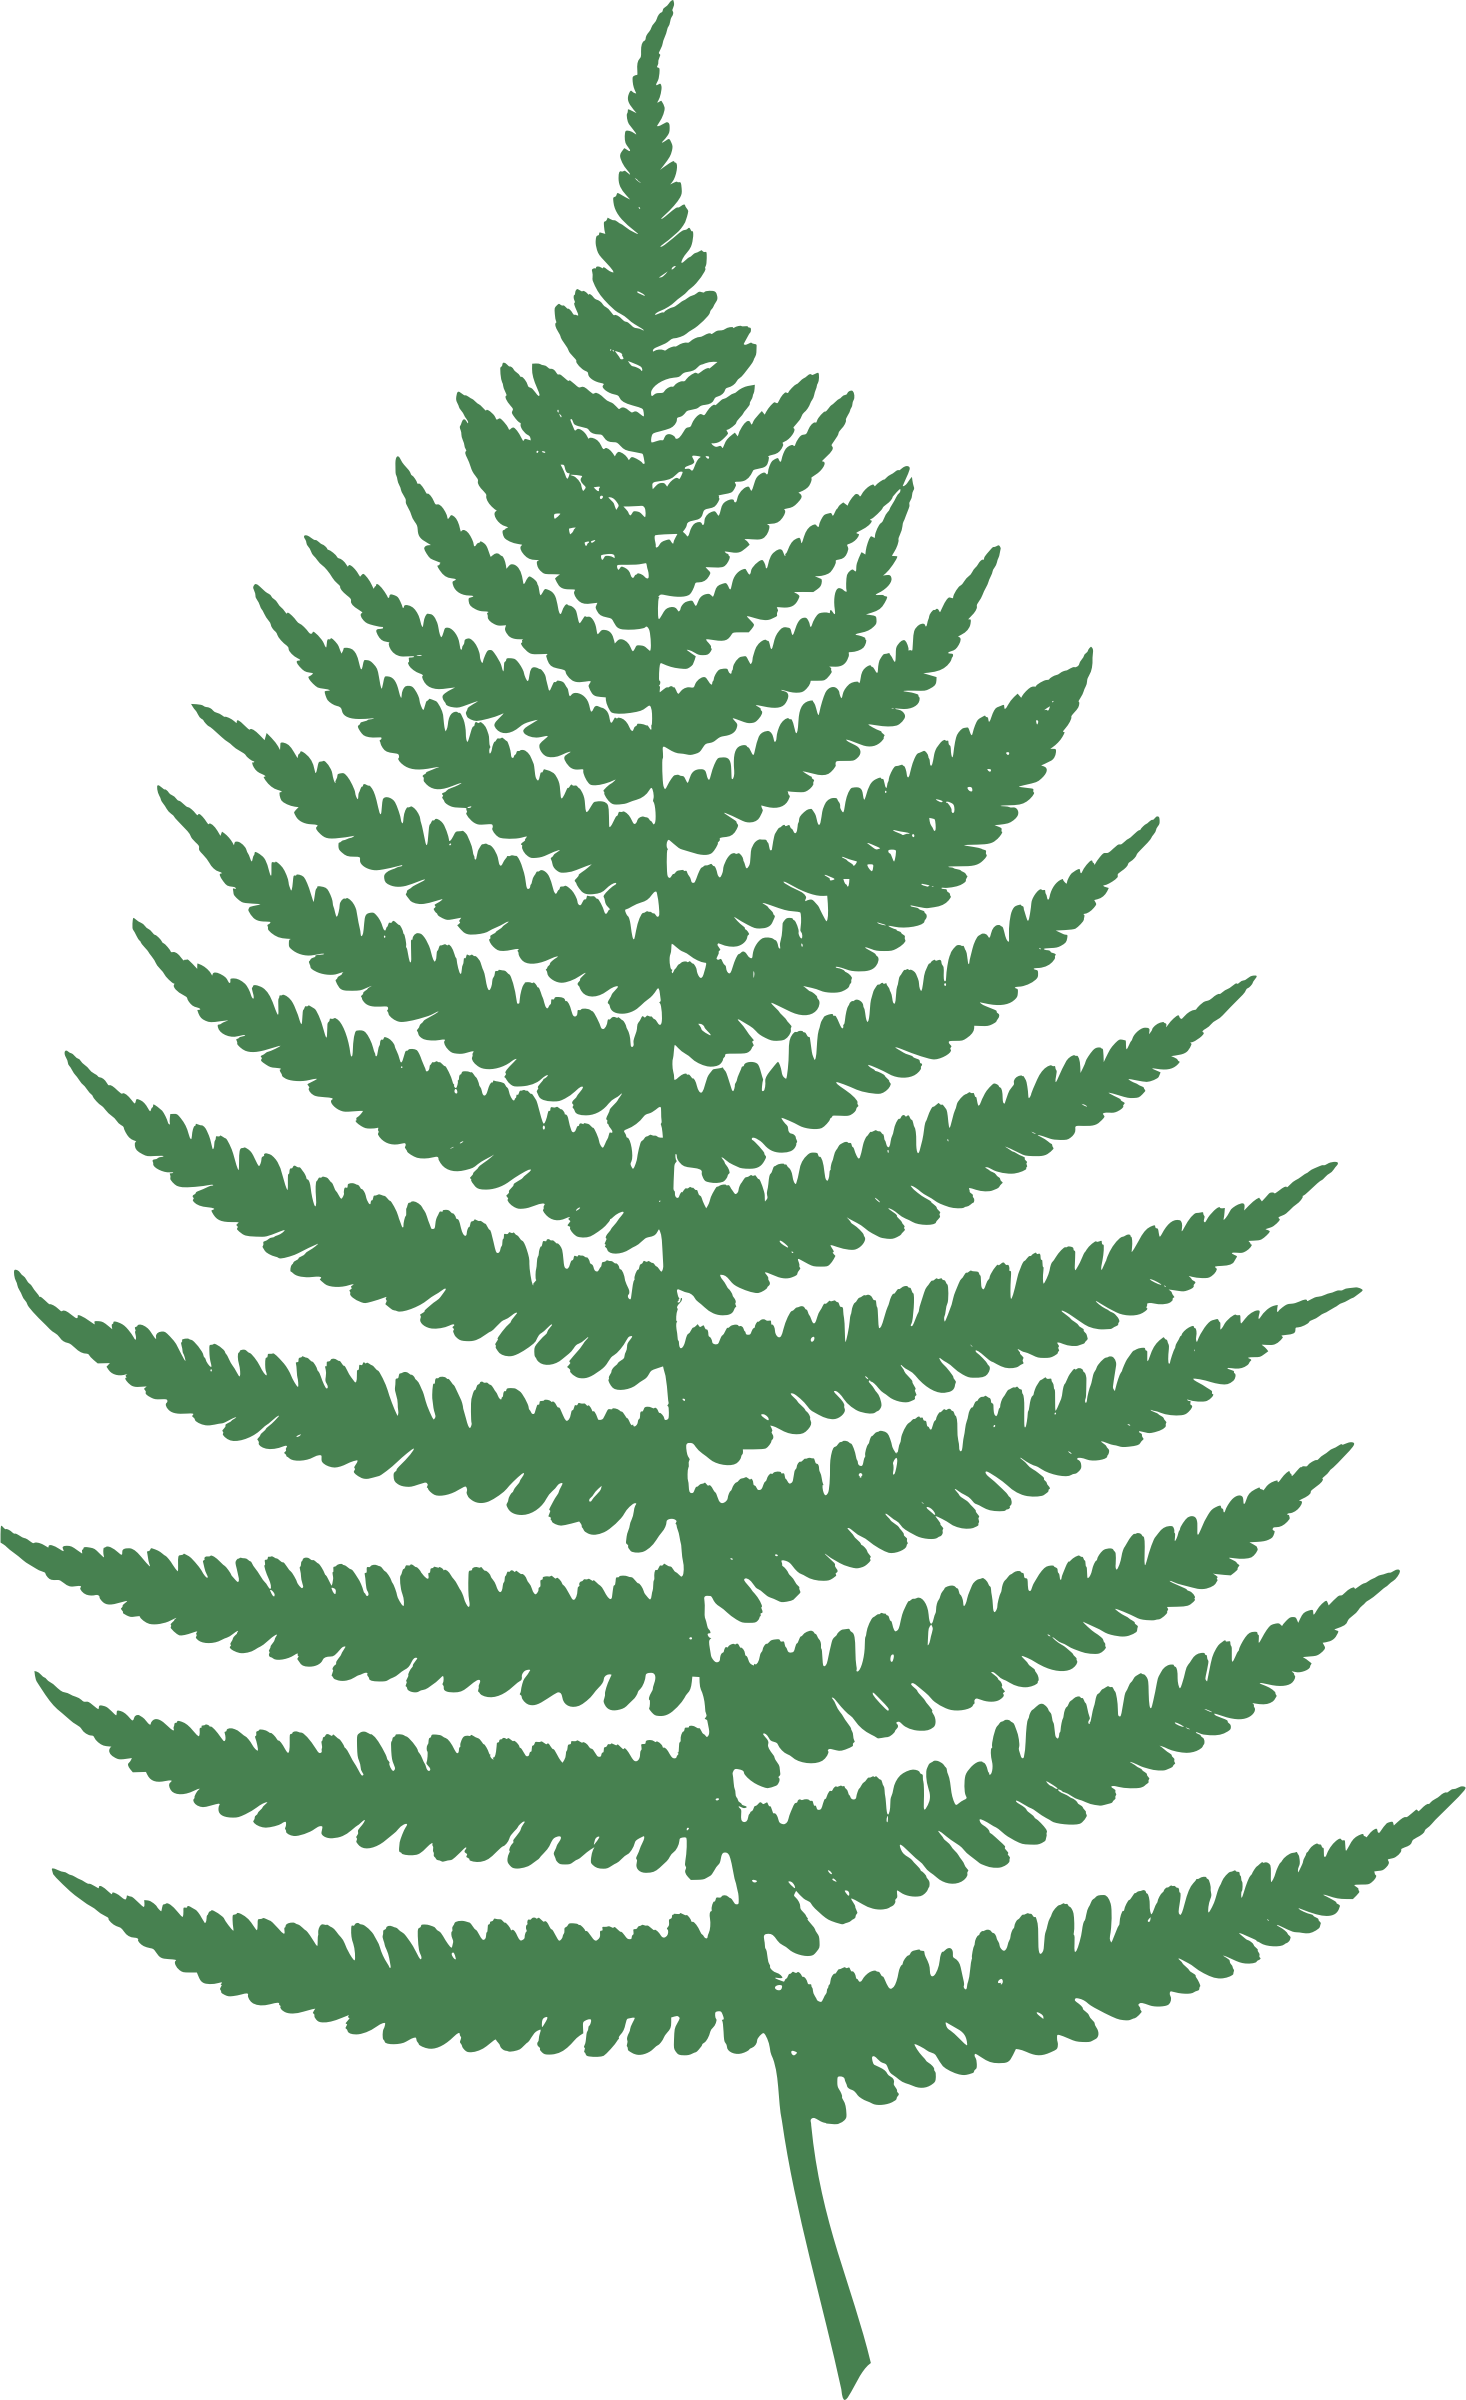 Fern clipart leaf accent. By moini wood burning